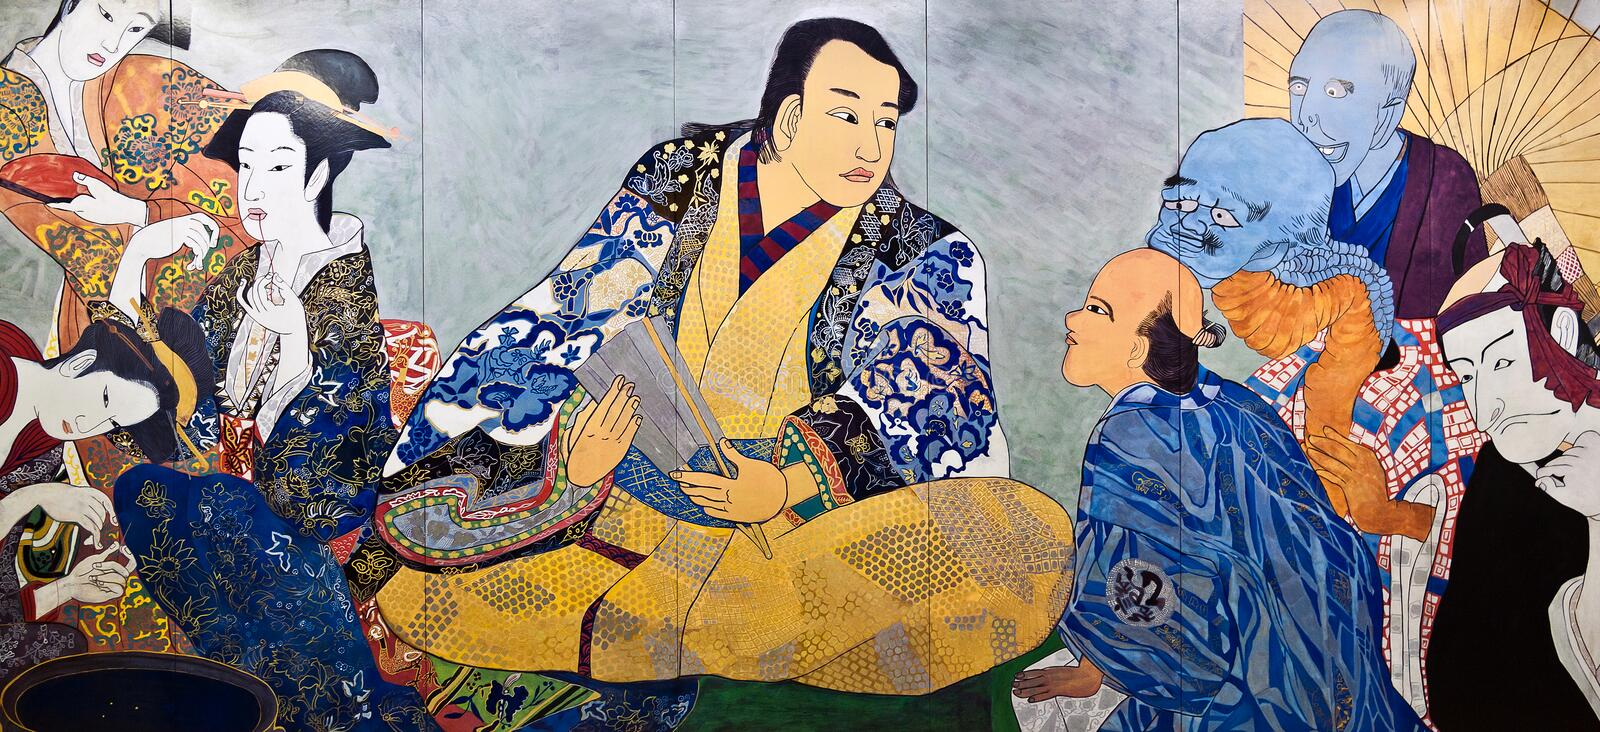 Japanese painting ukiyo-e. Japanese painting of some peoples in the marketplace. Ukiyo-e is a genre of japanese woodblock prints and paintings produced between